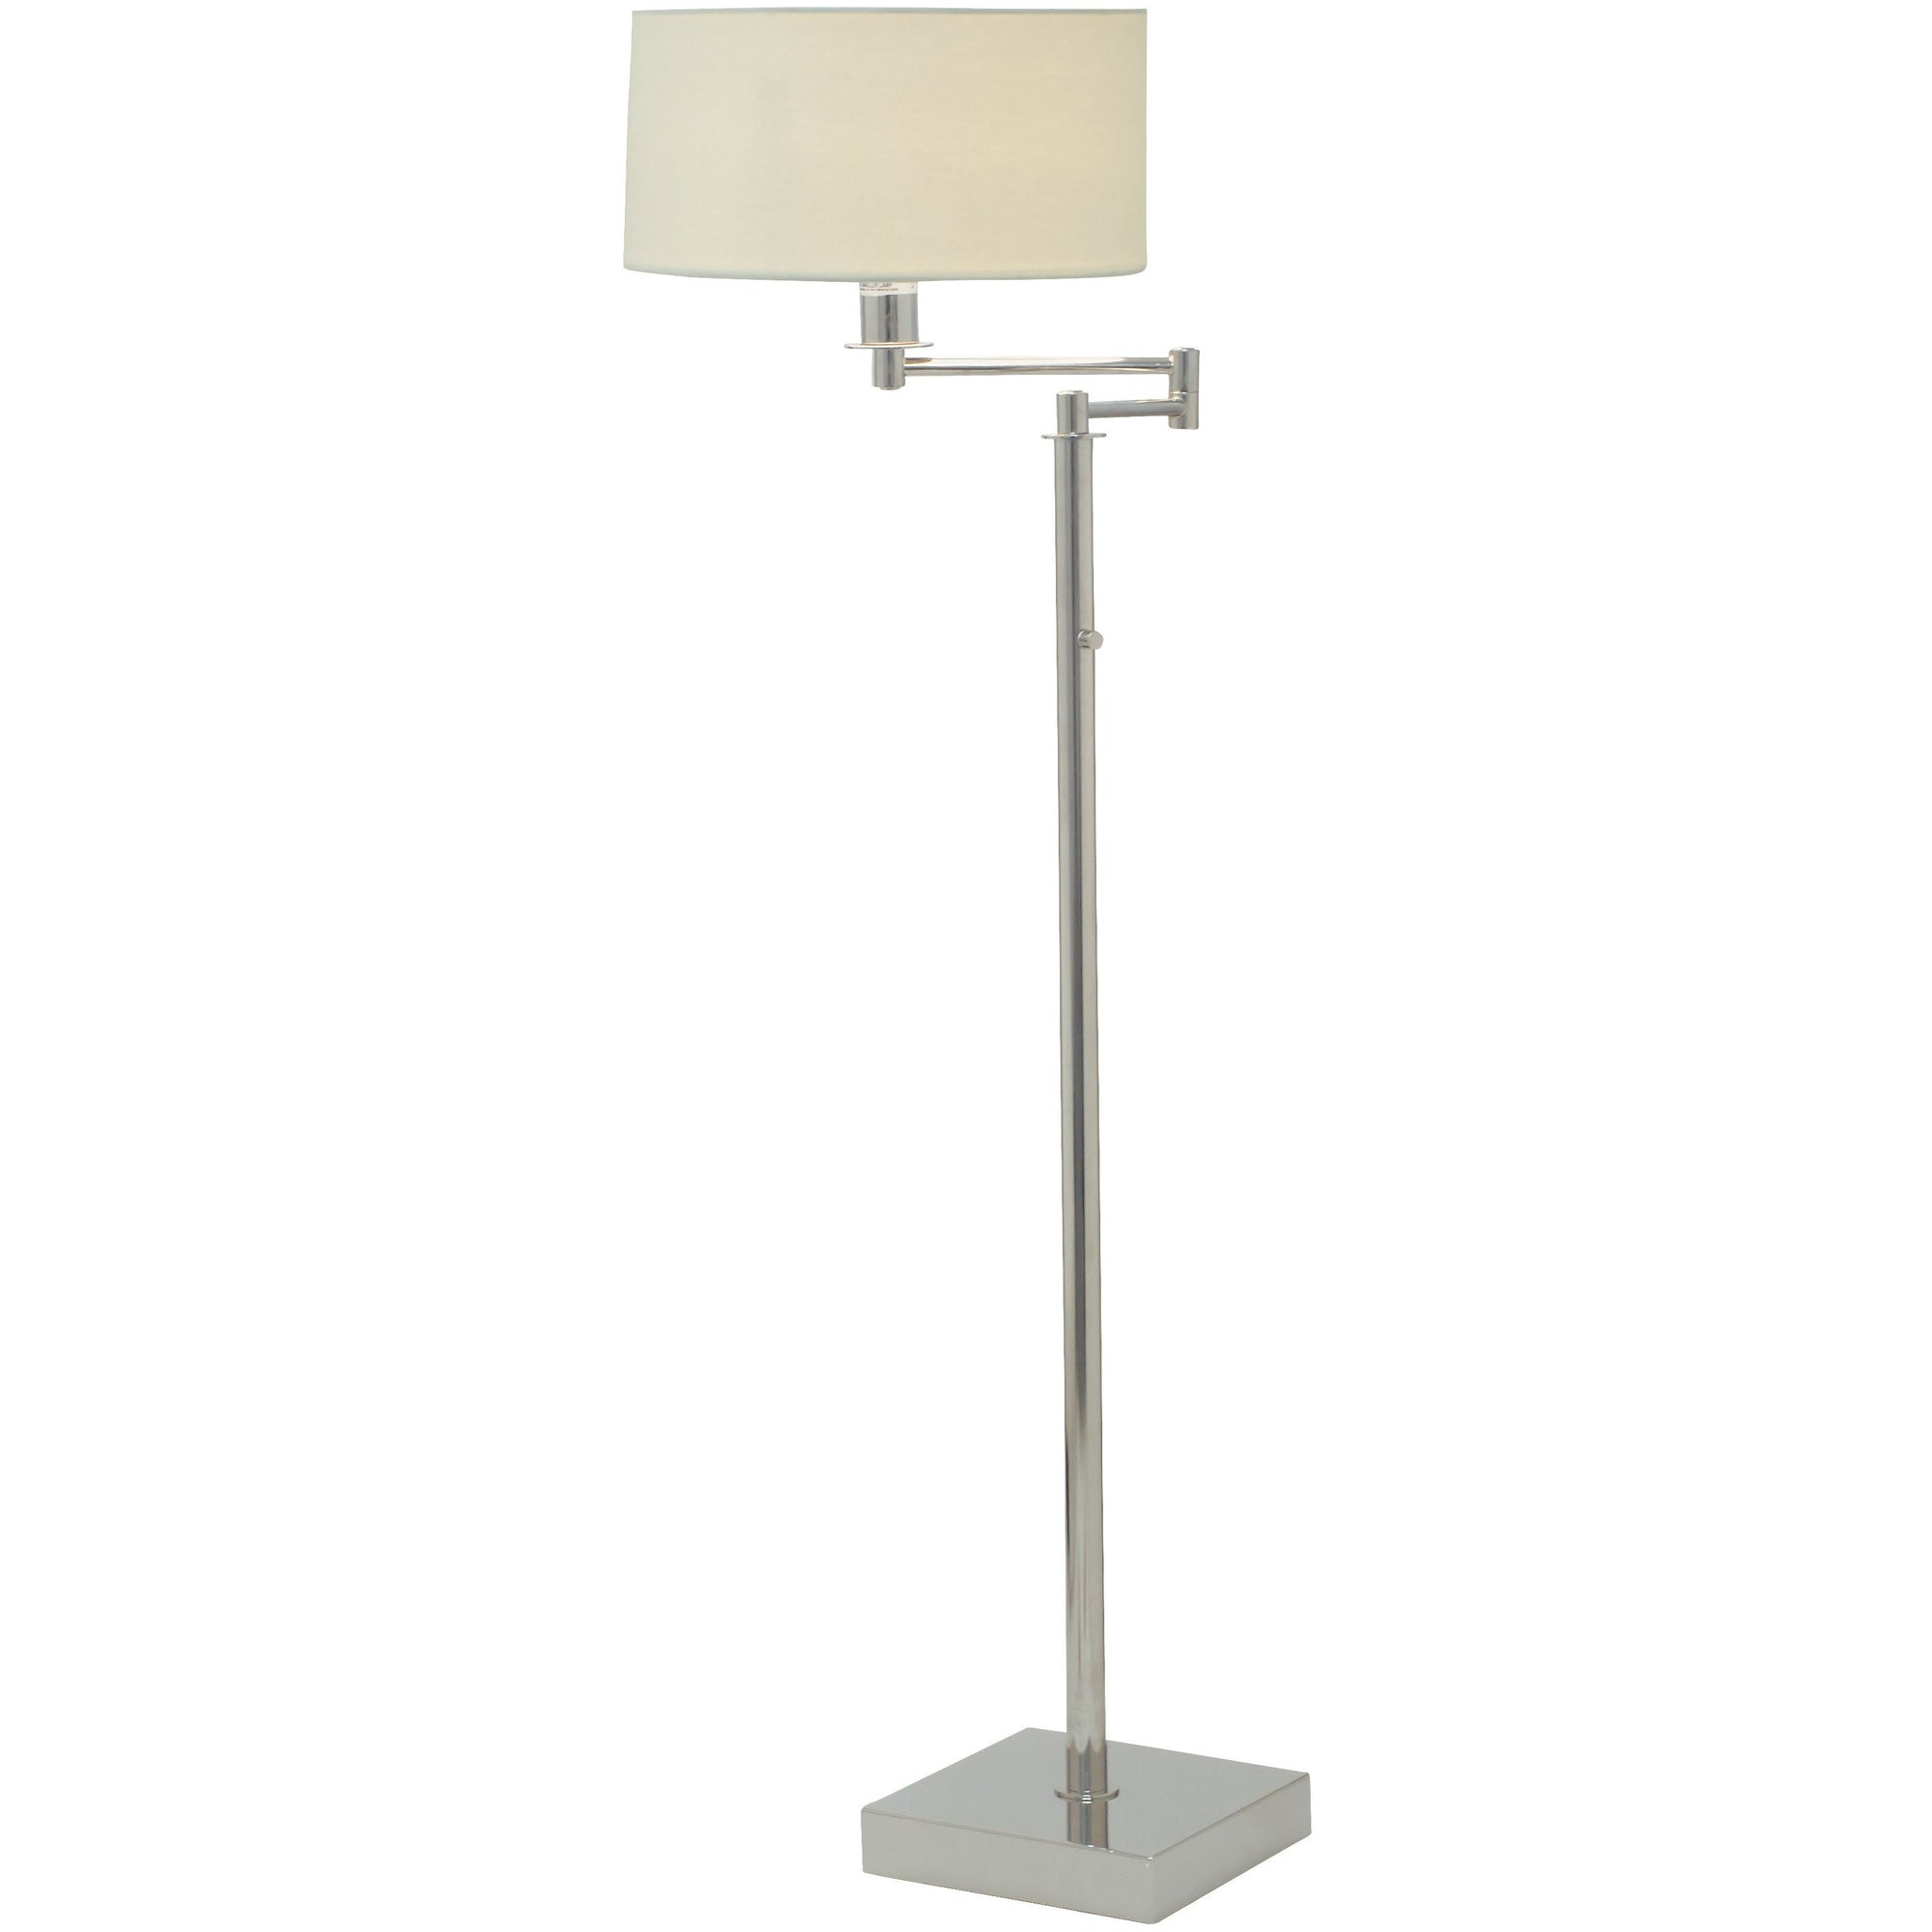 House Of Troy Floor Lamps Franklin Swing Arm Floor Lamp with Full Range Dimmer by House Of Troy FR701-PN